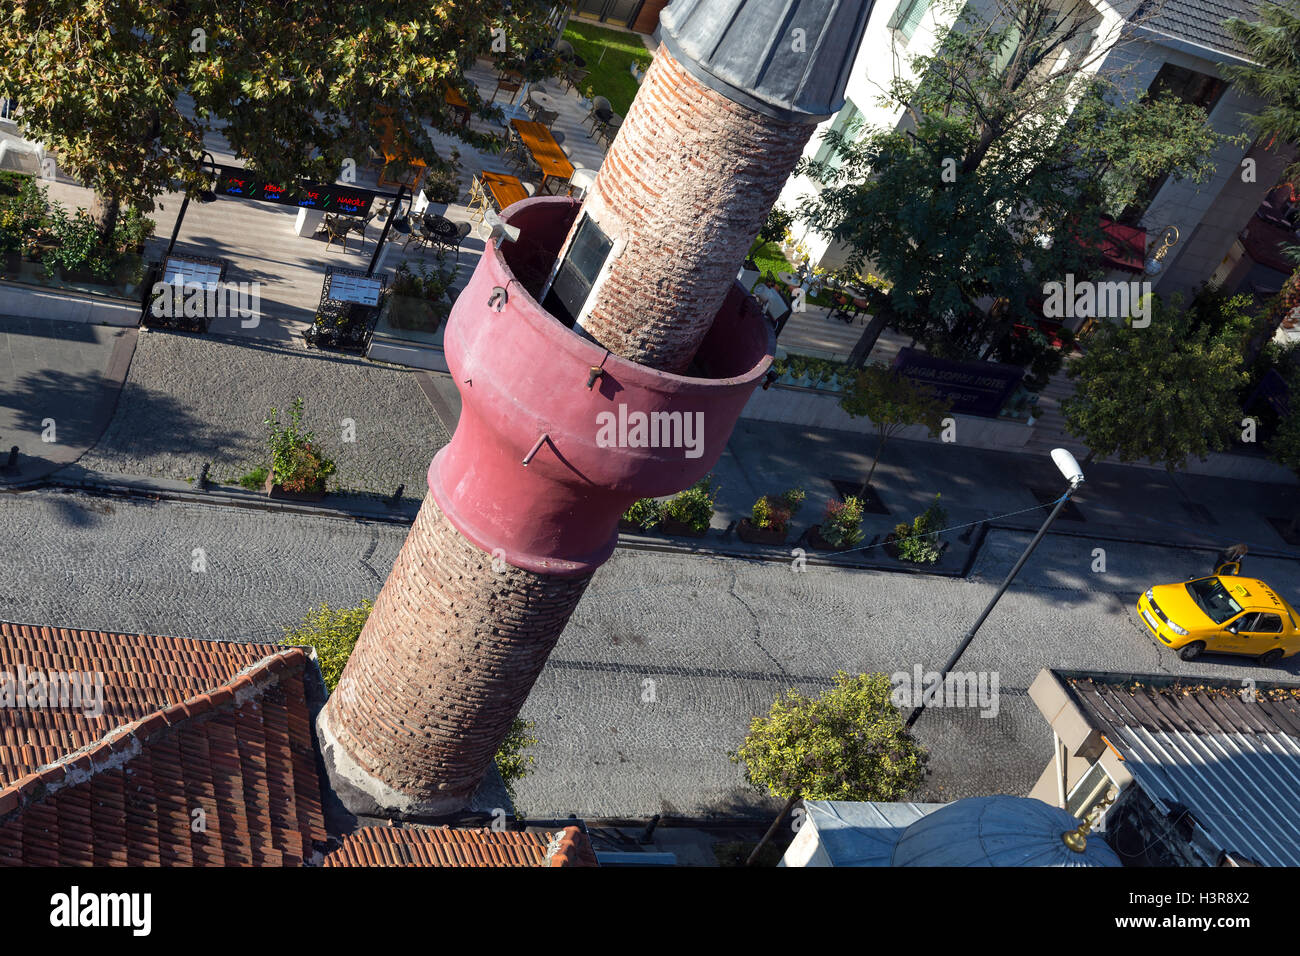 Top View of small Istanbul Street with Islamic Minaret - Stock Image